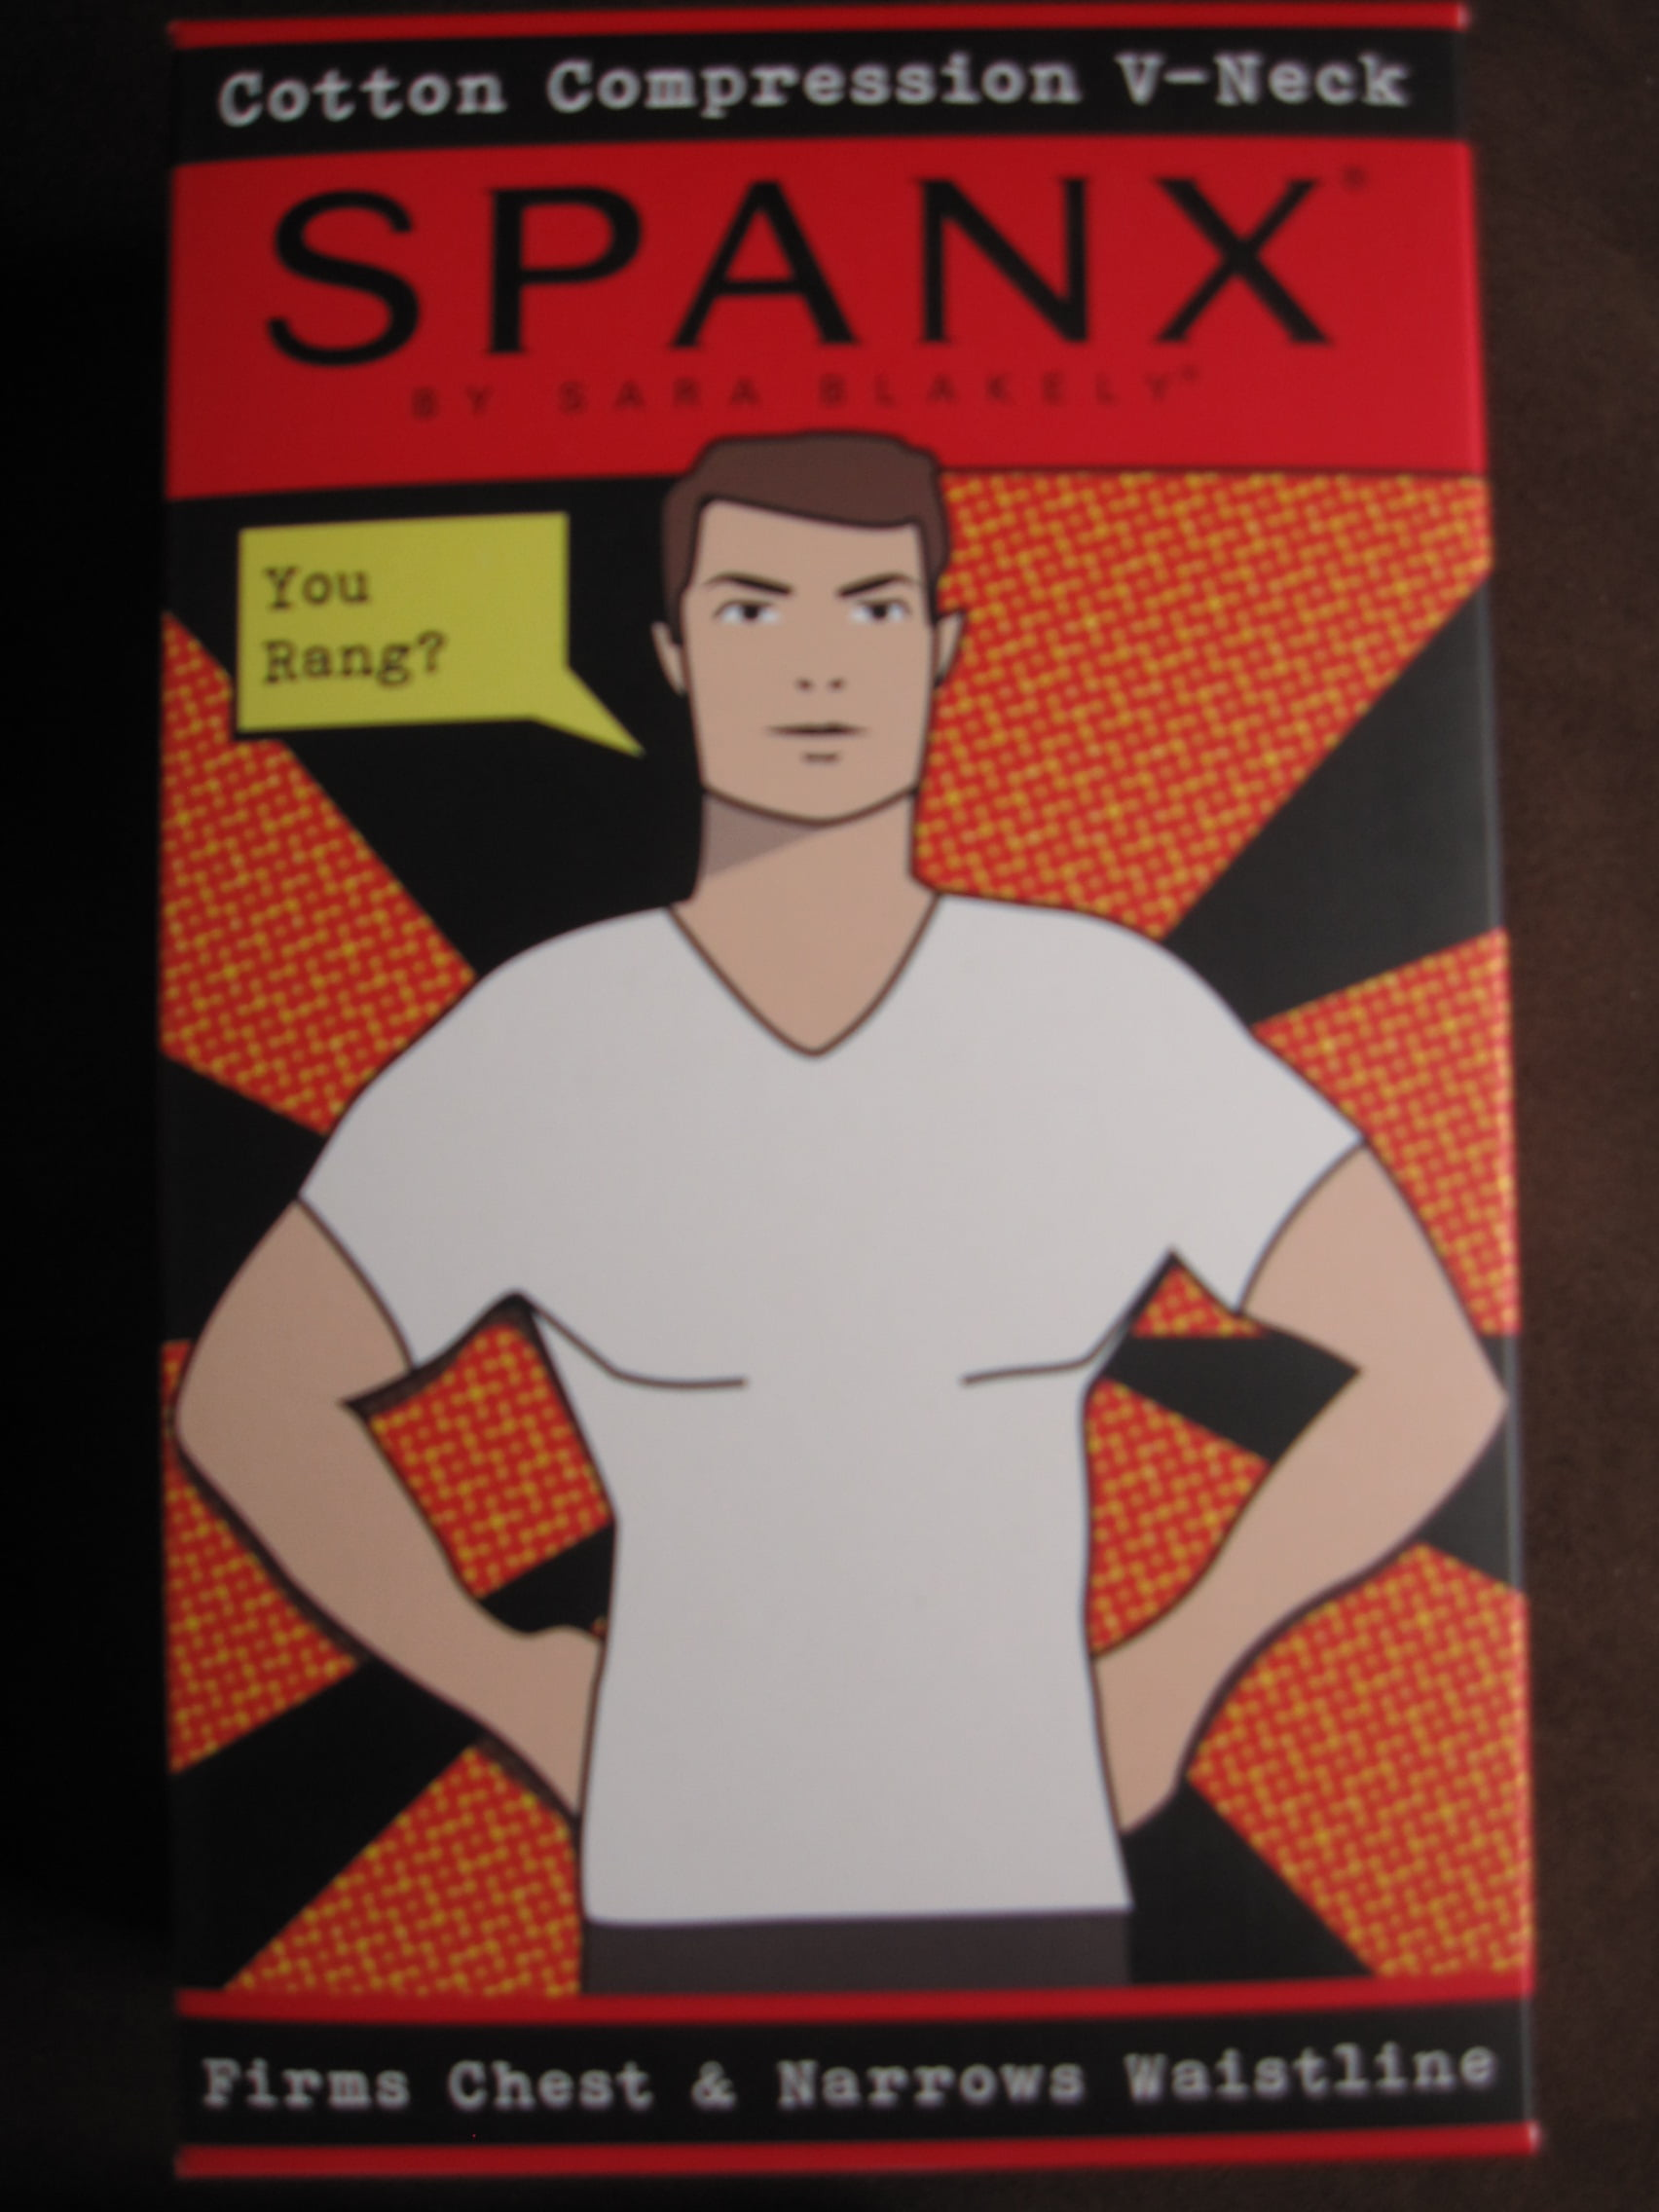 spanx-for-men-cotton-compression-v-neck-undershirts